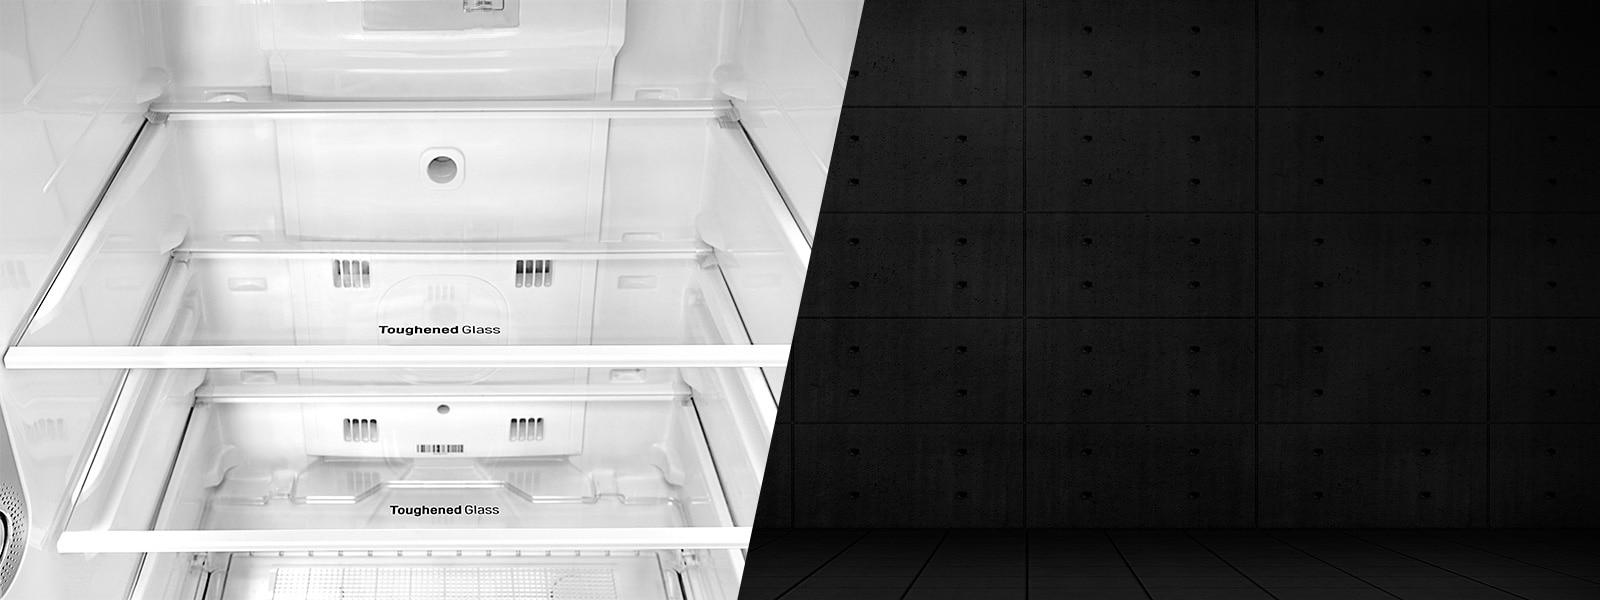 LG Toughened Glass Shelves Double Door Refrigerator